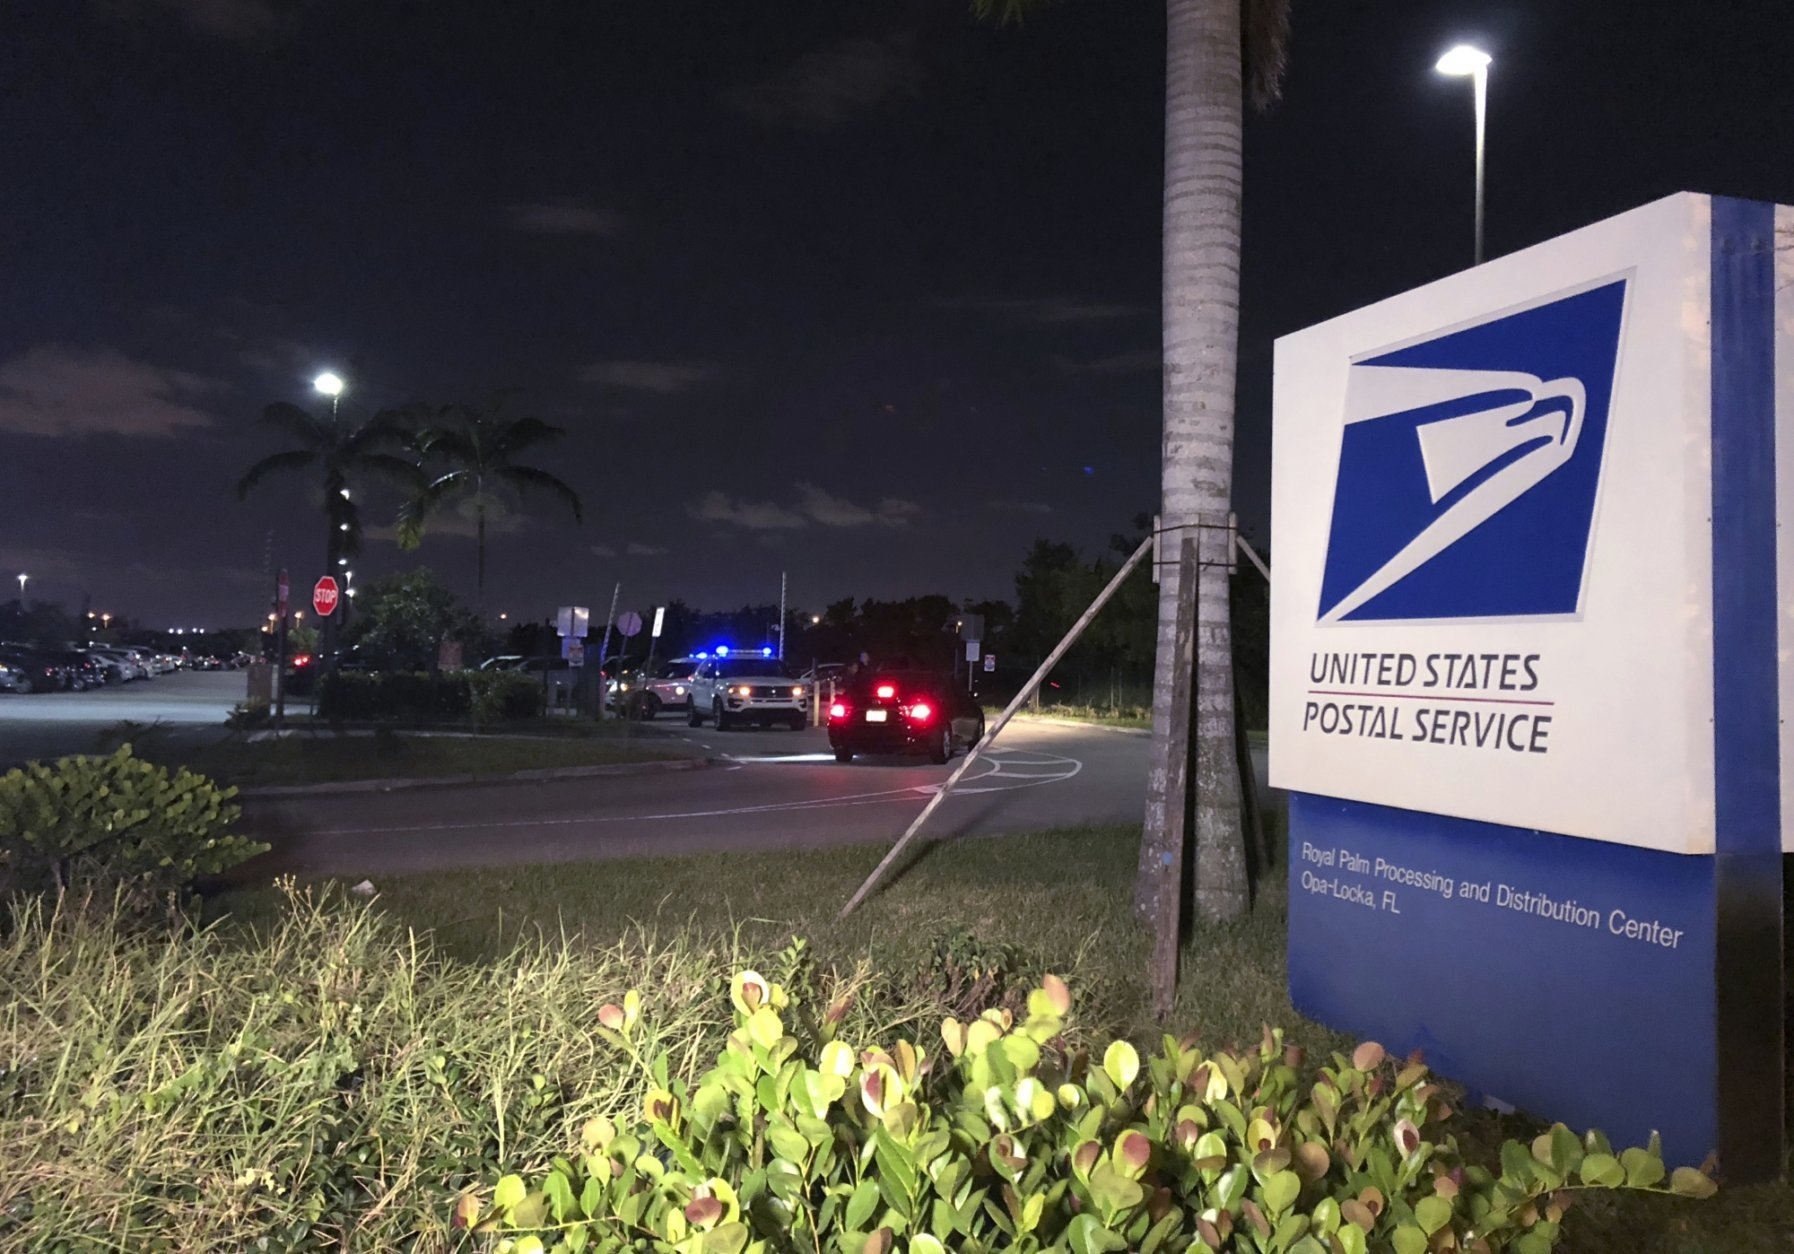 Postal service police screen employees entering the Royal Palm processing and Distribution Center, Thursday, Oct. 25, 2018 in Opa-locka, Fla.  A law enforcement source tells The Associated Press that Miami-Dade police have gone to the mail-sorting facility in Opa-Locka, Florida, at the request of the FBI in connection with the suspicious package investigation. The source says it was a precautionary measure.(AP Photo/Josh Replogle)